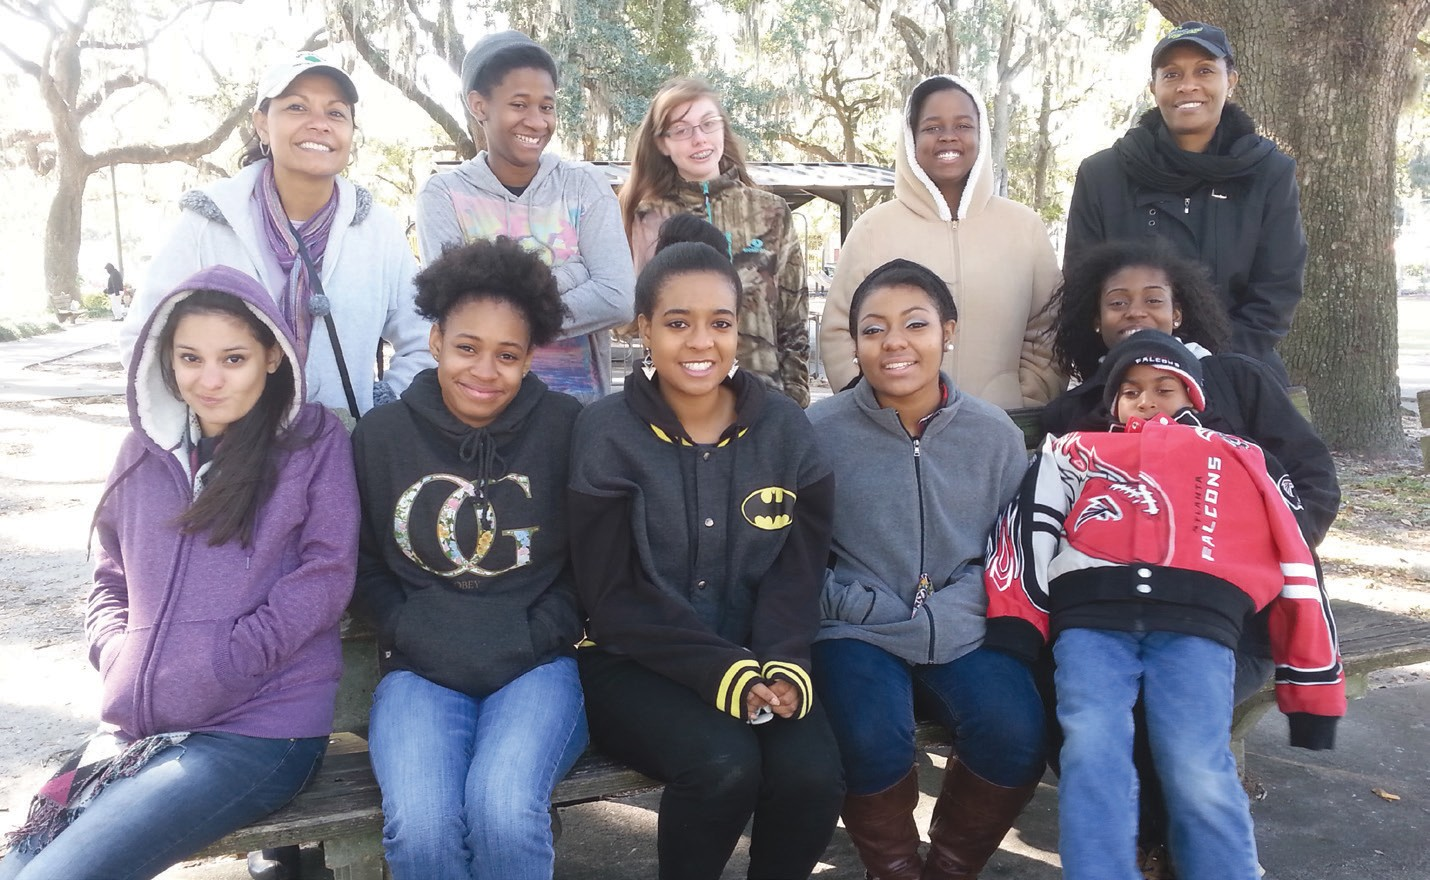 Front row - Rachel Crawford, Alexzia Clovis, Zysha Smiley, Asija Cueto, and Raquel Williams with her brother Matthew. Back row: Co-leader, Maria Crawford, Liza Clovis, Kristen Ragan, Nariel Tribble, and Troop Leader, Sharon Smiley.